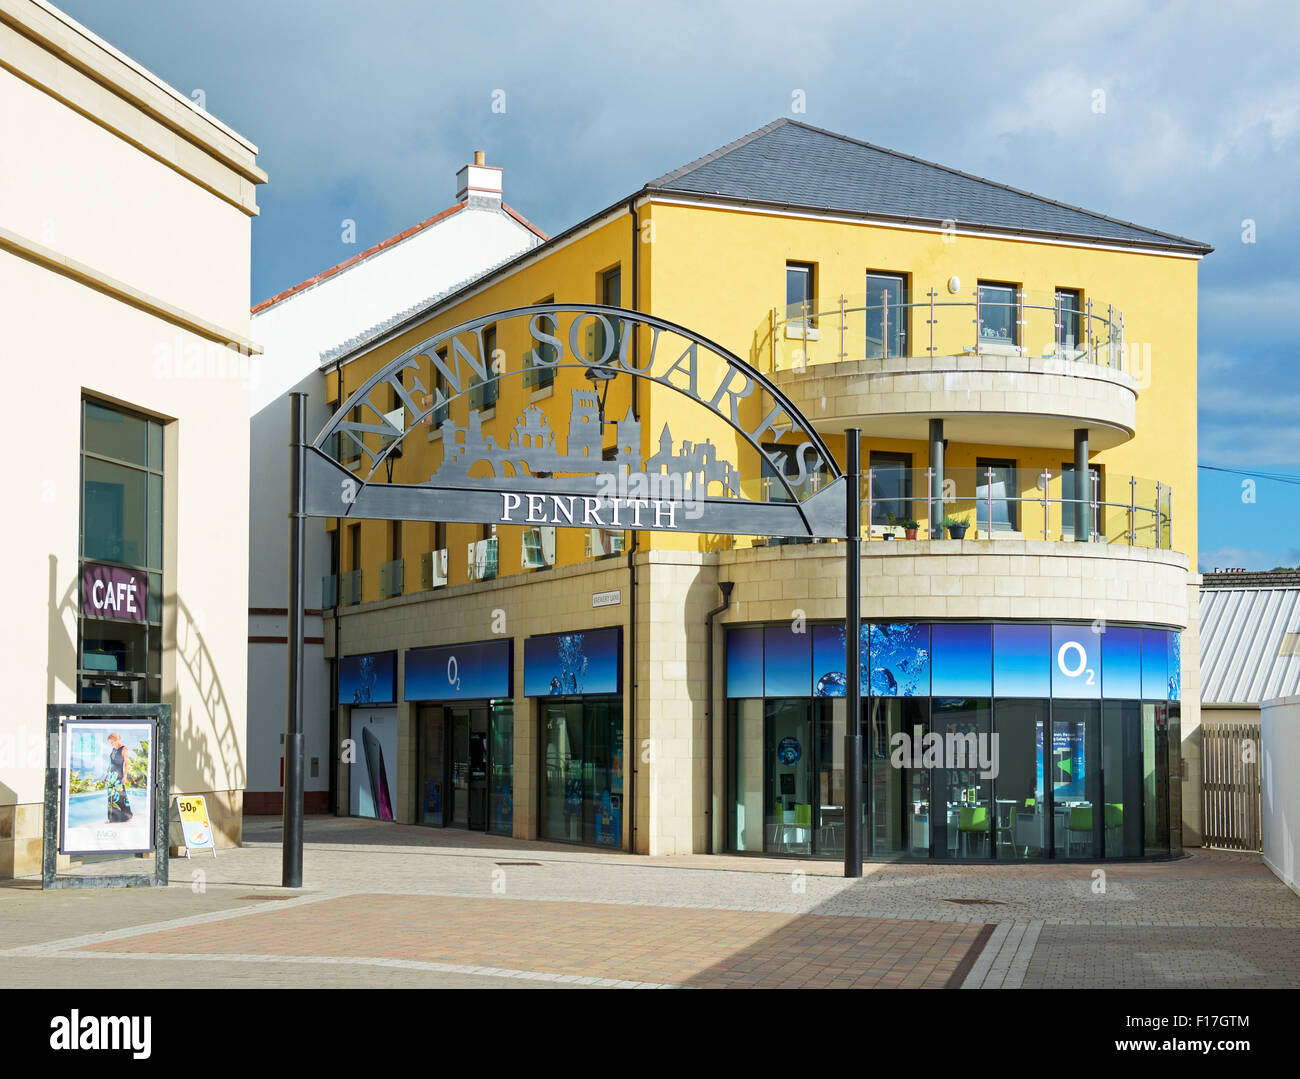 New Squares, a shopping centre in Penrith, Cumbria, England UK - Stock Image